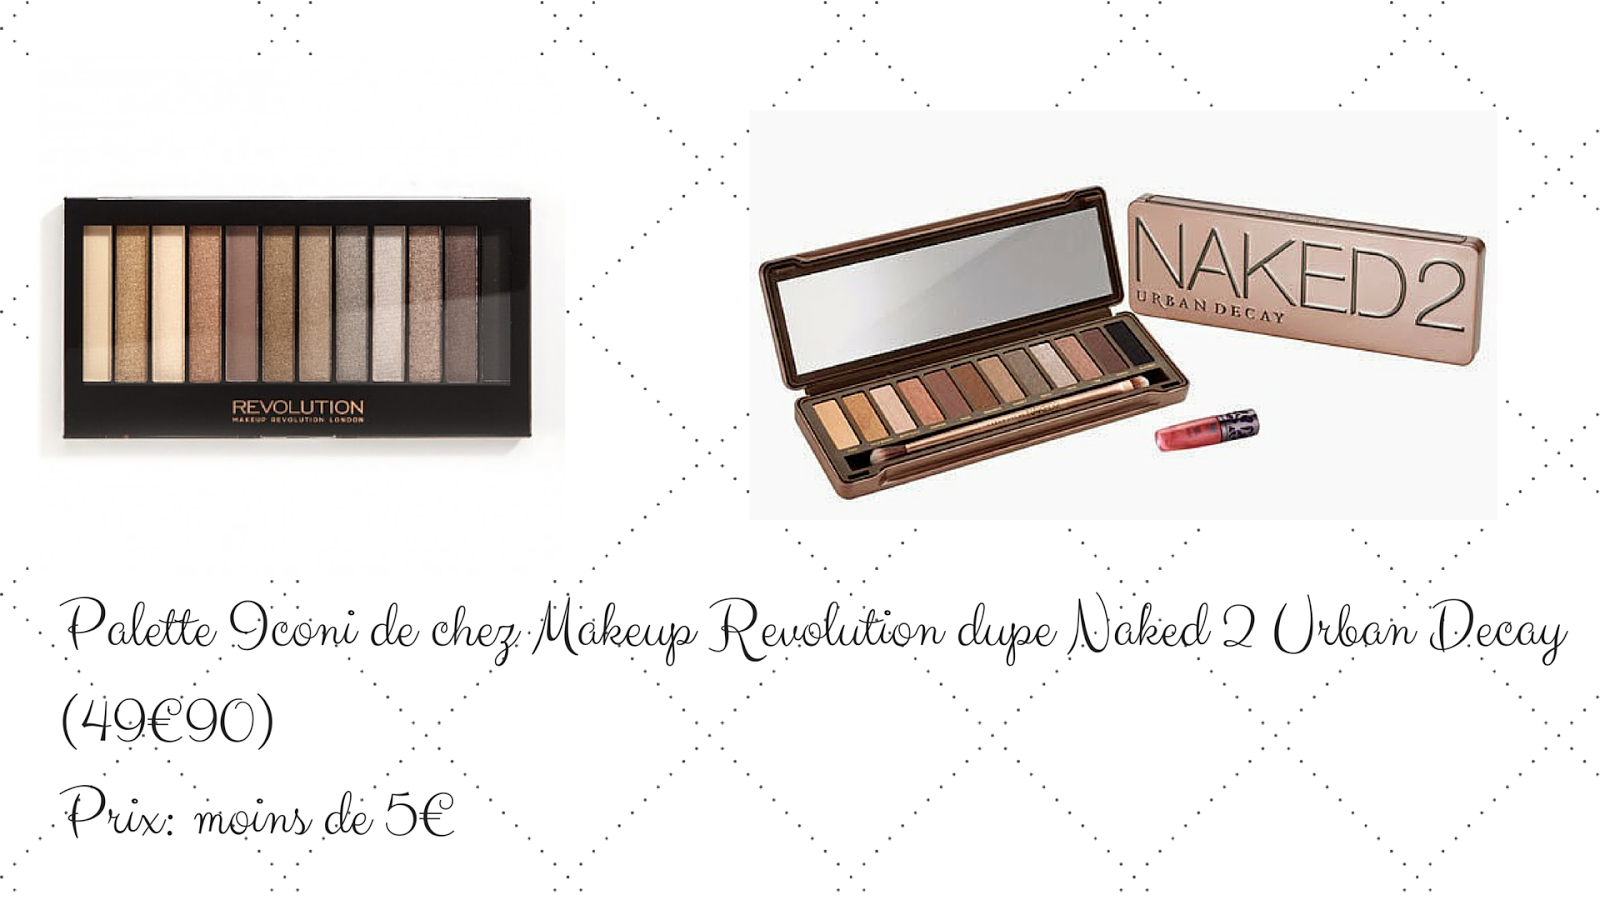 http://www.makeuprevolutionstore.com/index.php/palettes/redemption-12-shades/redemption-palette-iconic-2.html